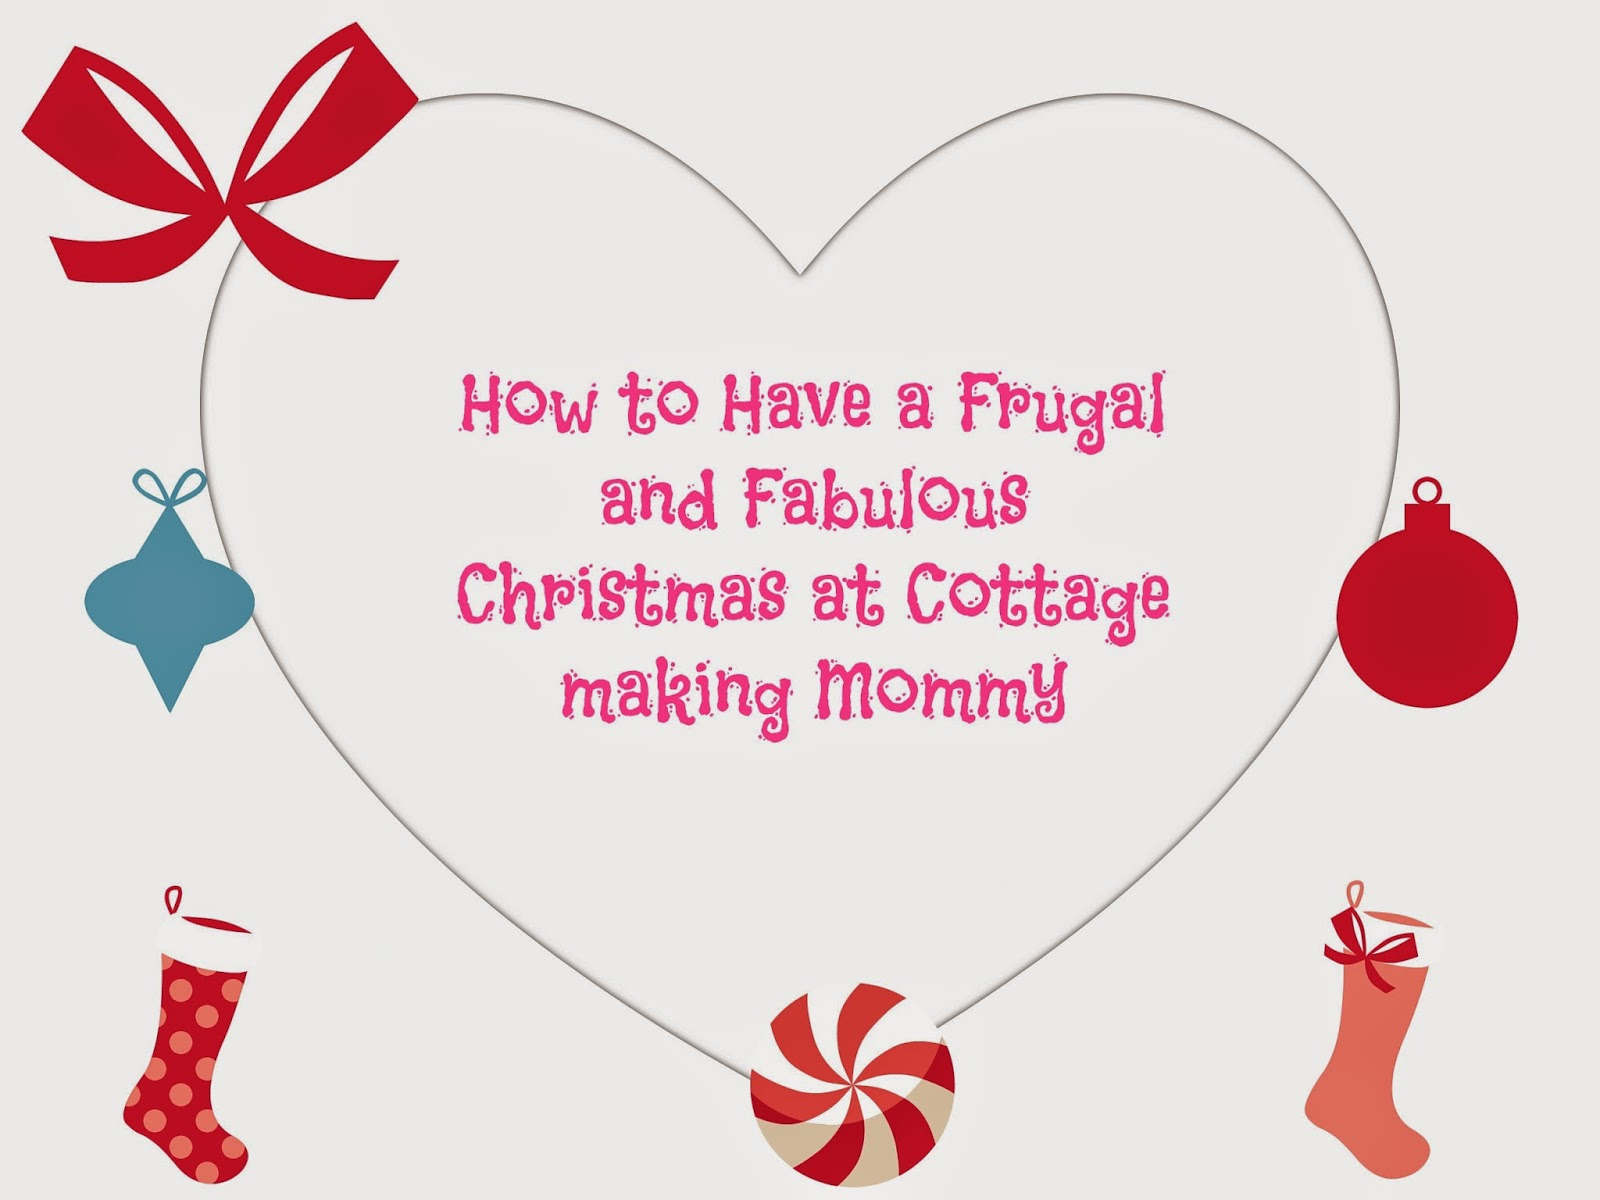 Cottage Making Mommy: Have a Frugal and Fabulous Christmas Day 1